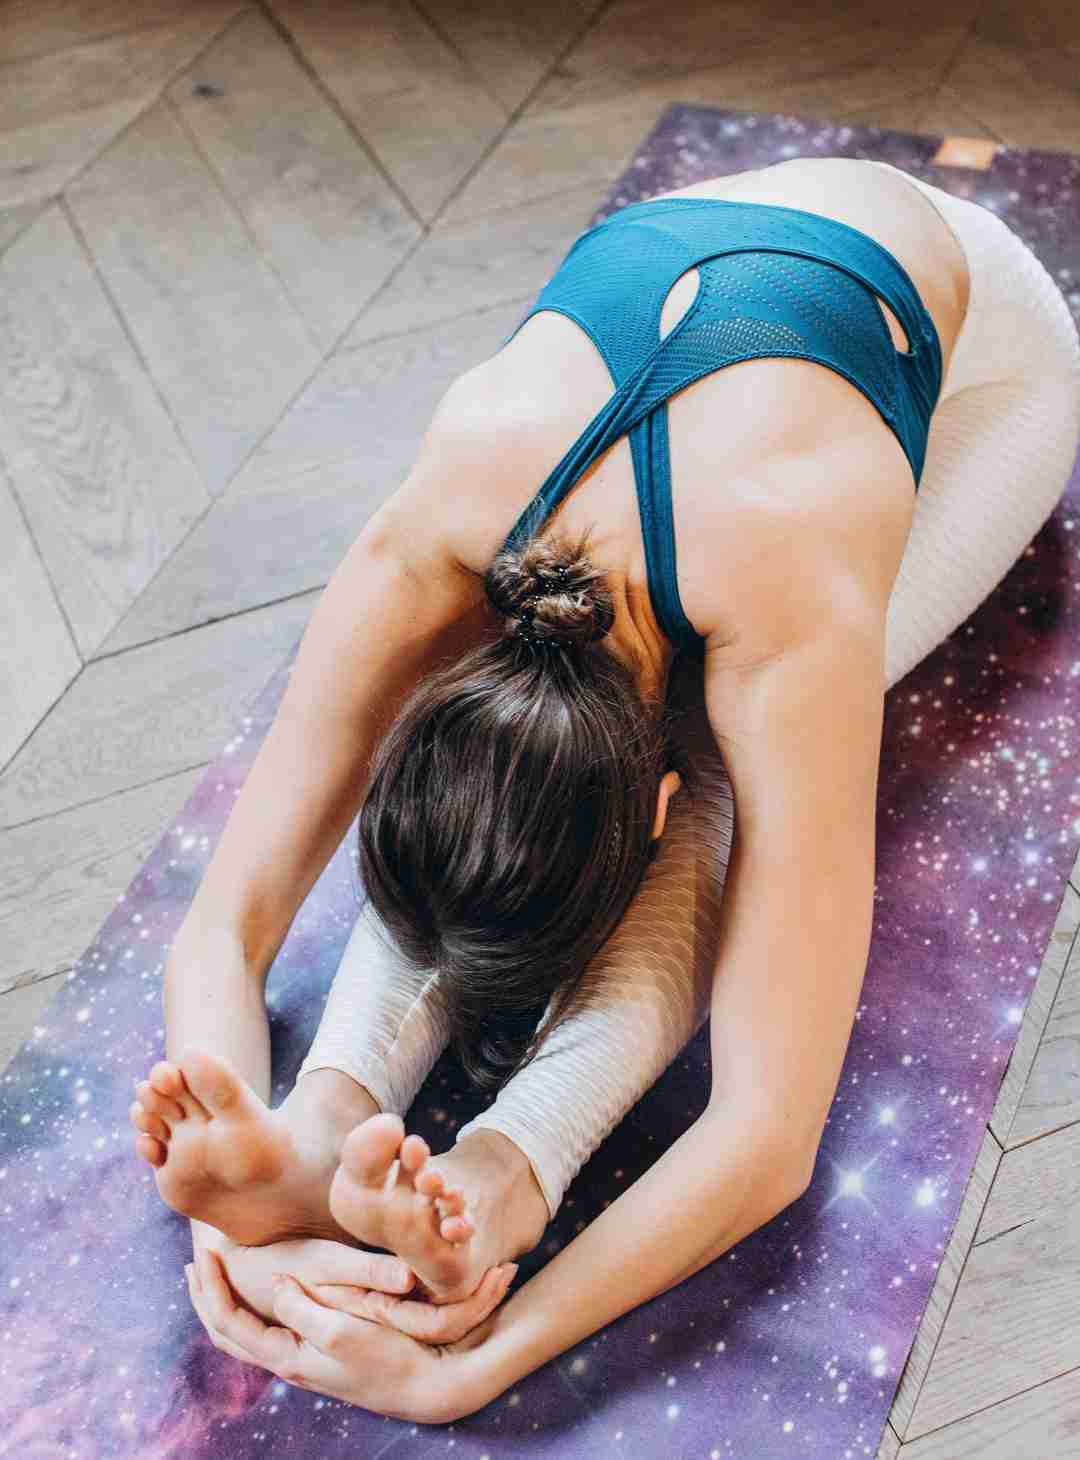 yoga for joint-friendly exercise